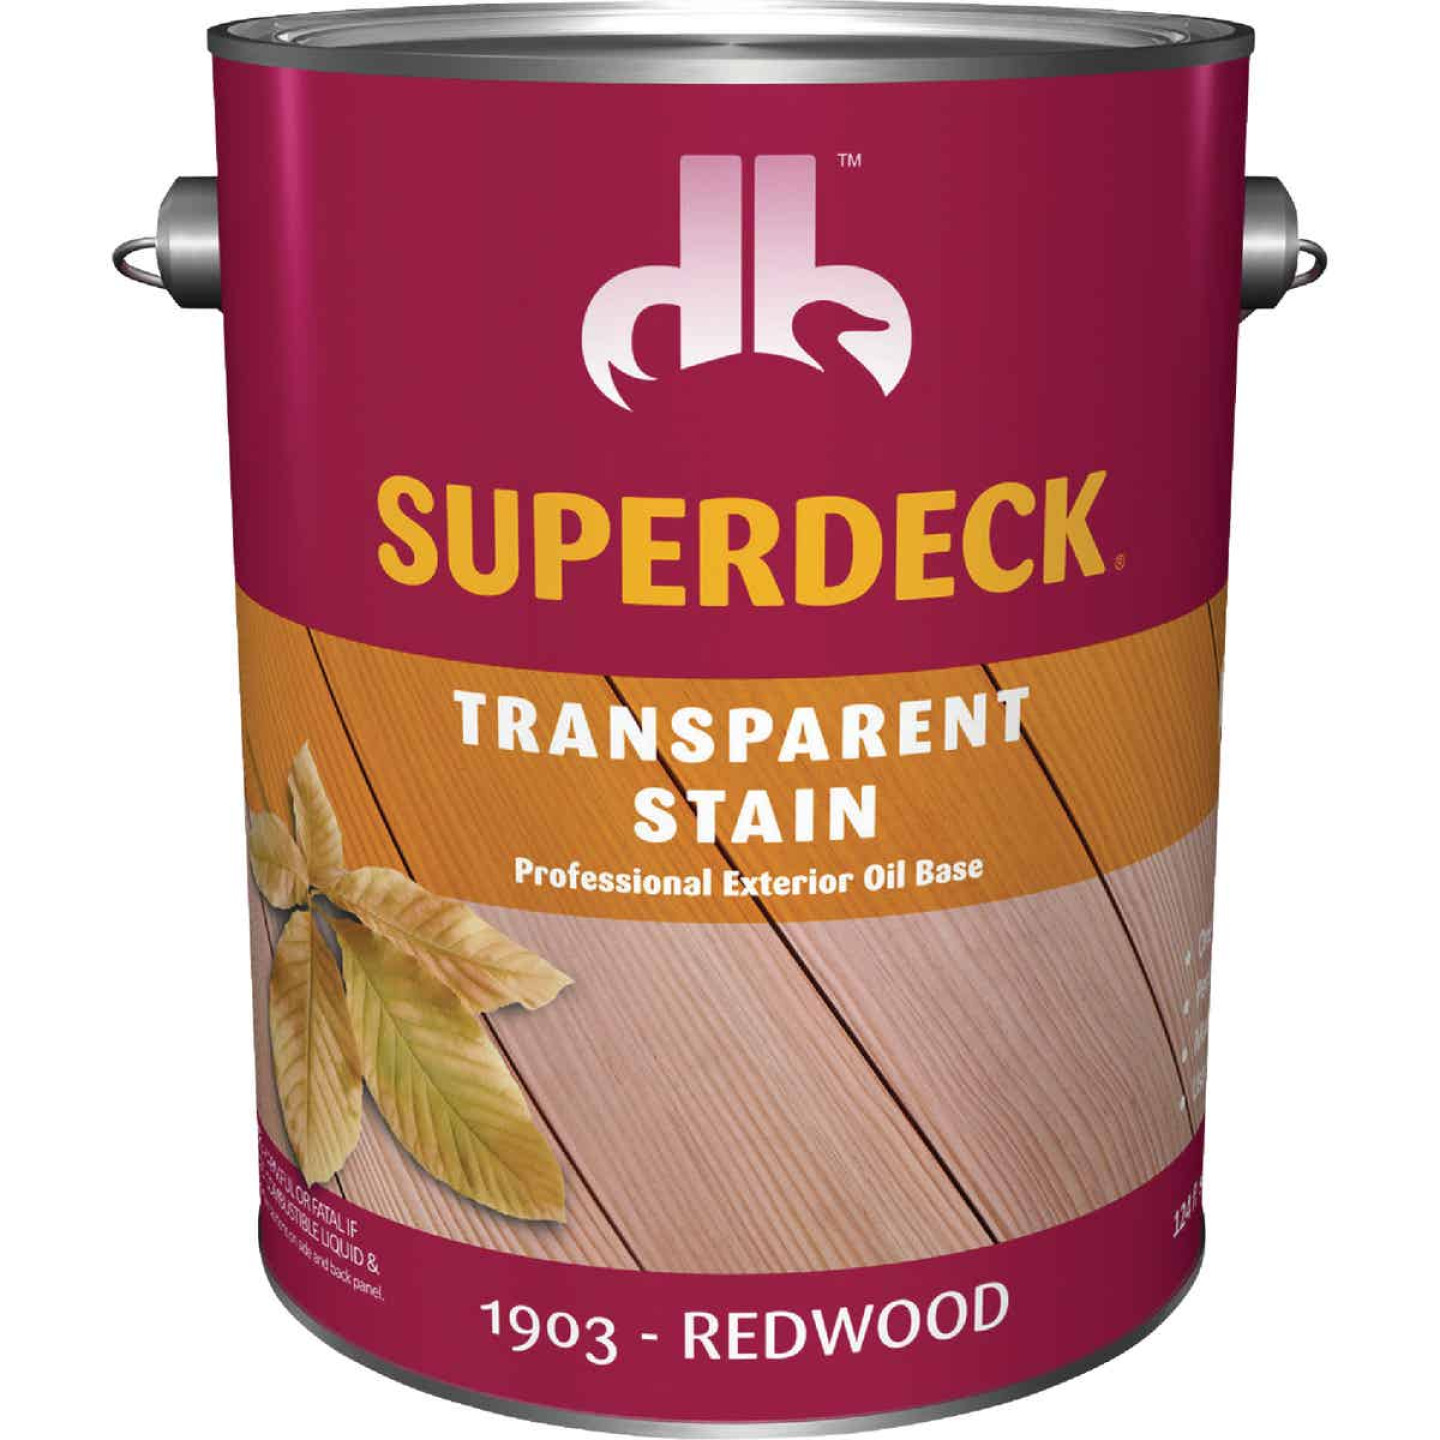 Duckback SUPERDECK Transparent Exterior Stain, Redwood, 1 Gal. Image 1